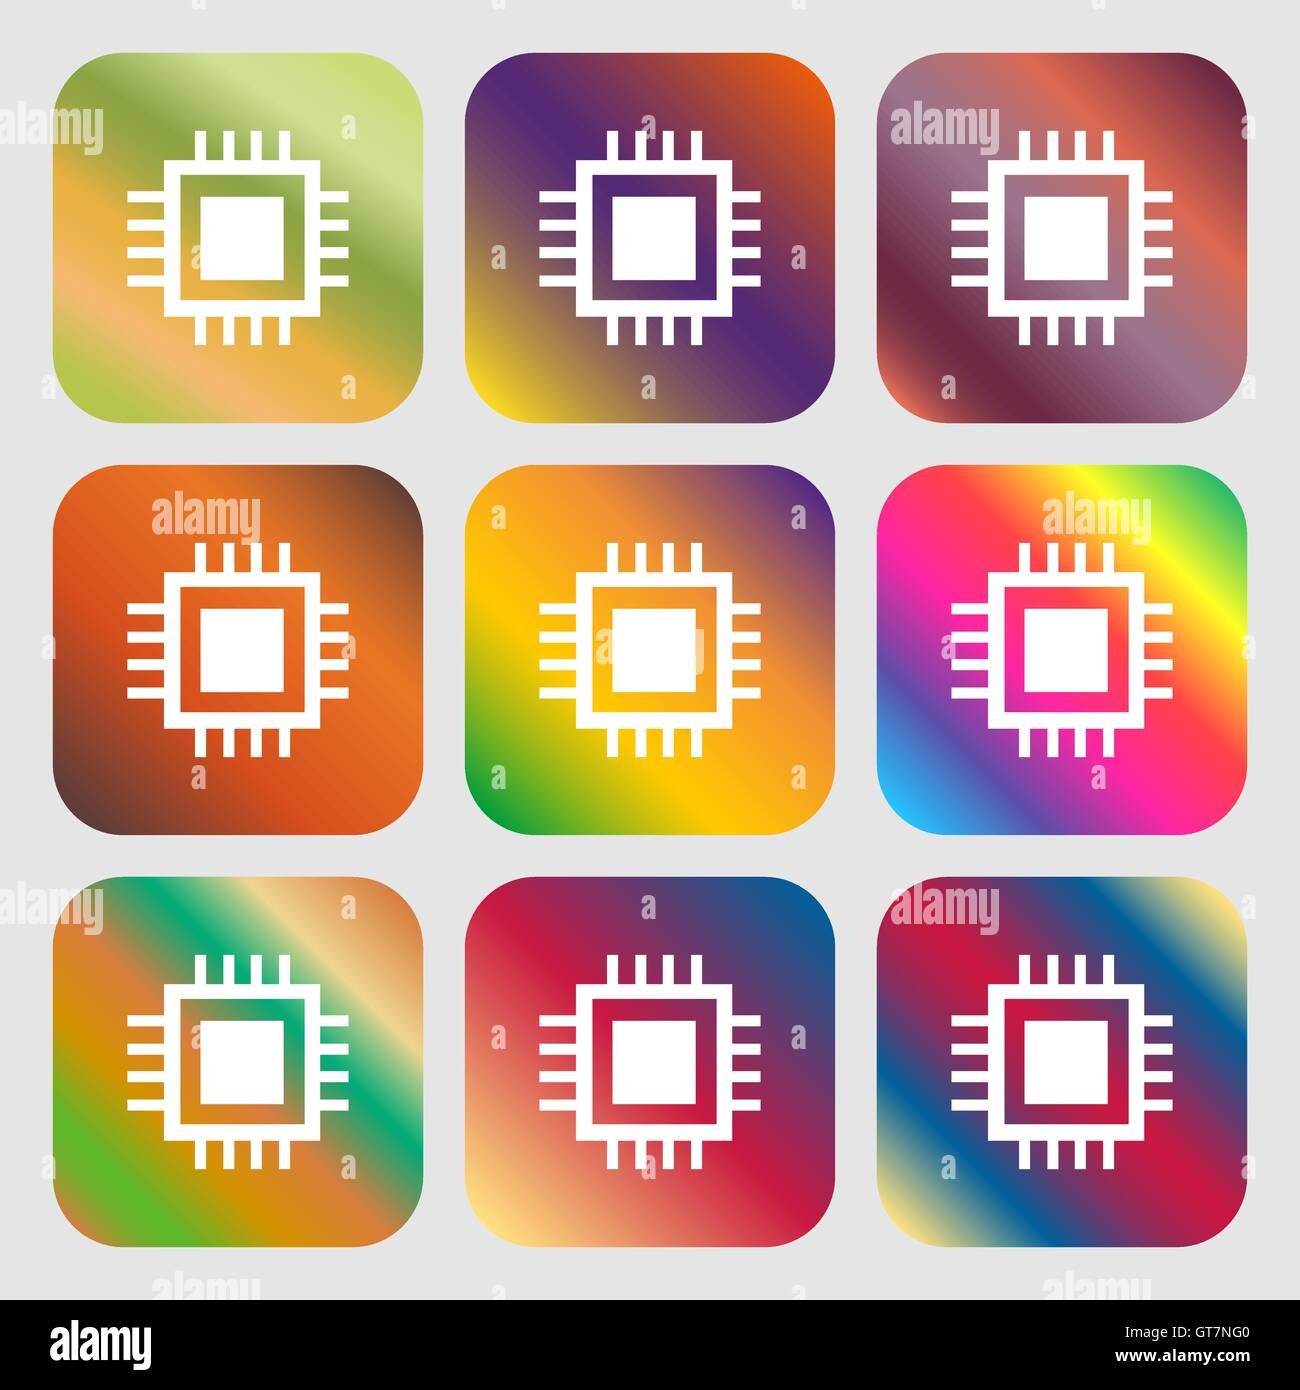 Integrated Circuit Card Stock Vector Images Alamy Circuits And Symbol Technology Scheme Circle Nine Buttons With Bright Gradients For